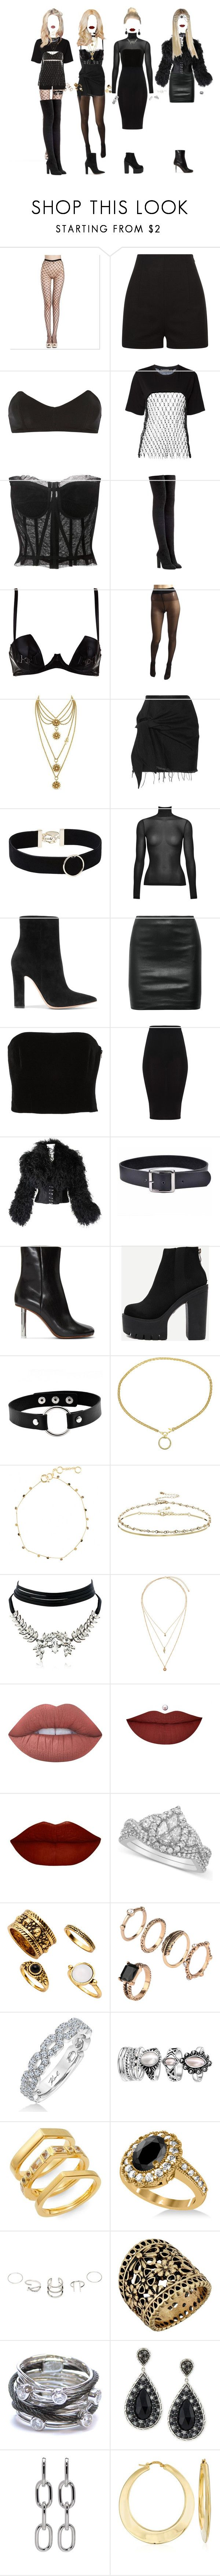 """F.JO"" by xxeucliffexx ❤ liked on Polyvore featuring Fleur du Mal, Filles à papa, Dolce&Gabbana, adidas Originals, Wolford, Juicy Couture, Marques'Almeida, Witchery, Gianvito Rossi and The Row"